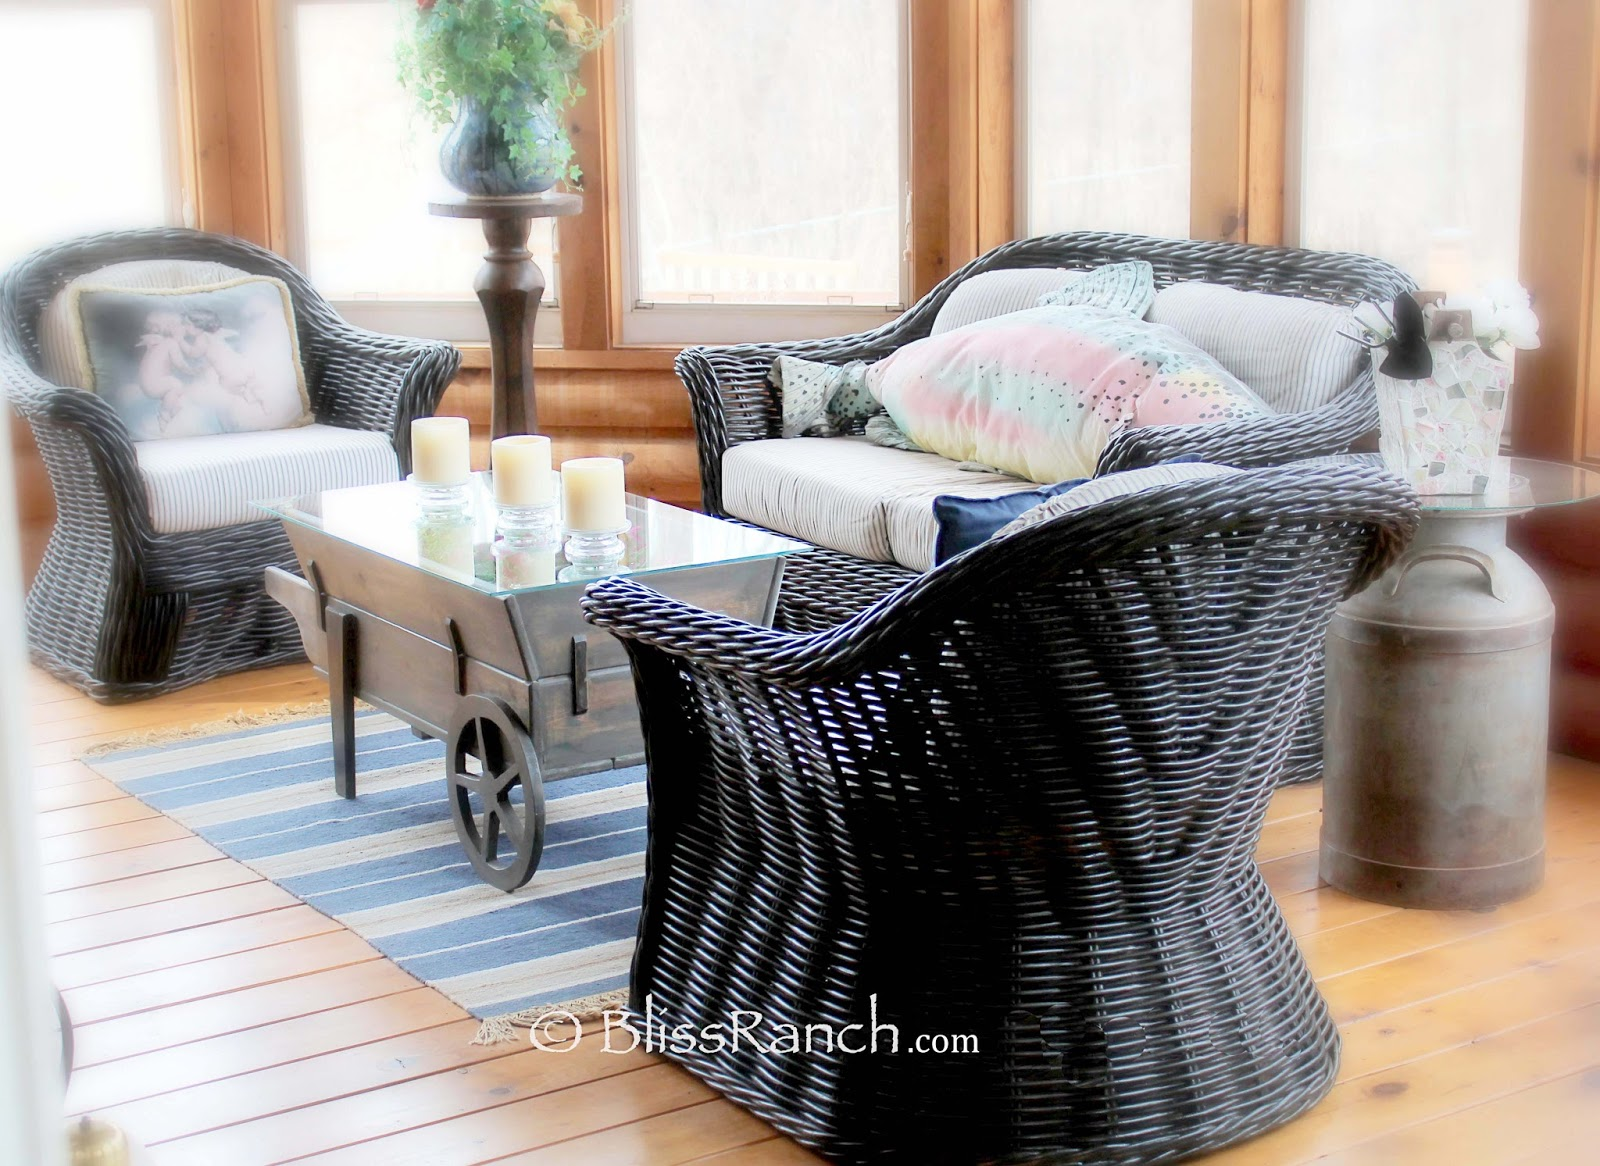 From My Front Porch To Yours- How I Found my Style Sundays-3 Season Porch Bliss-Ranch.com